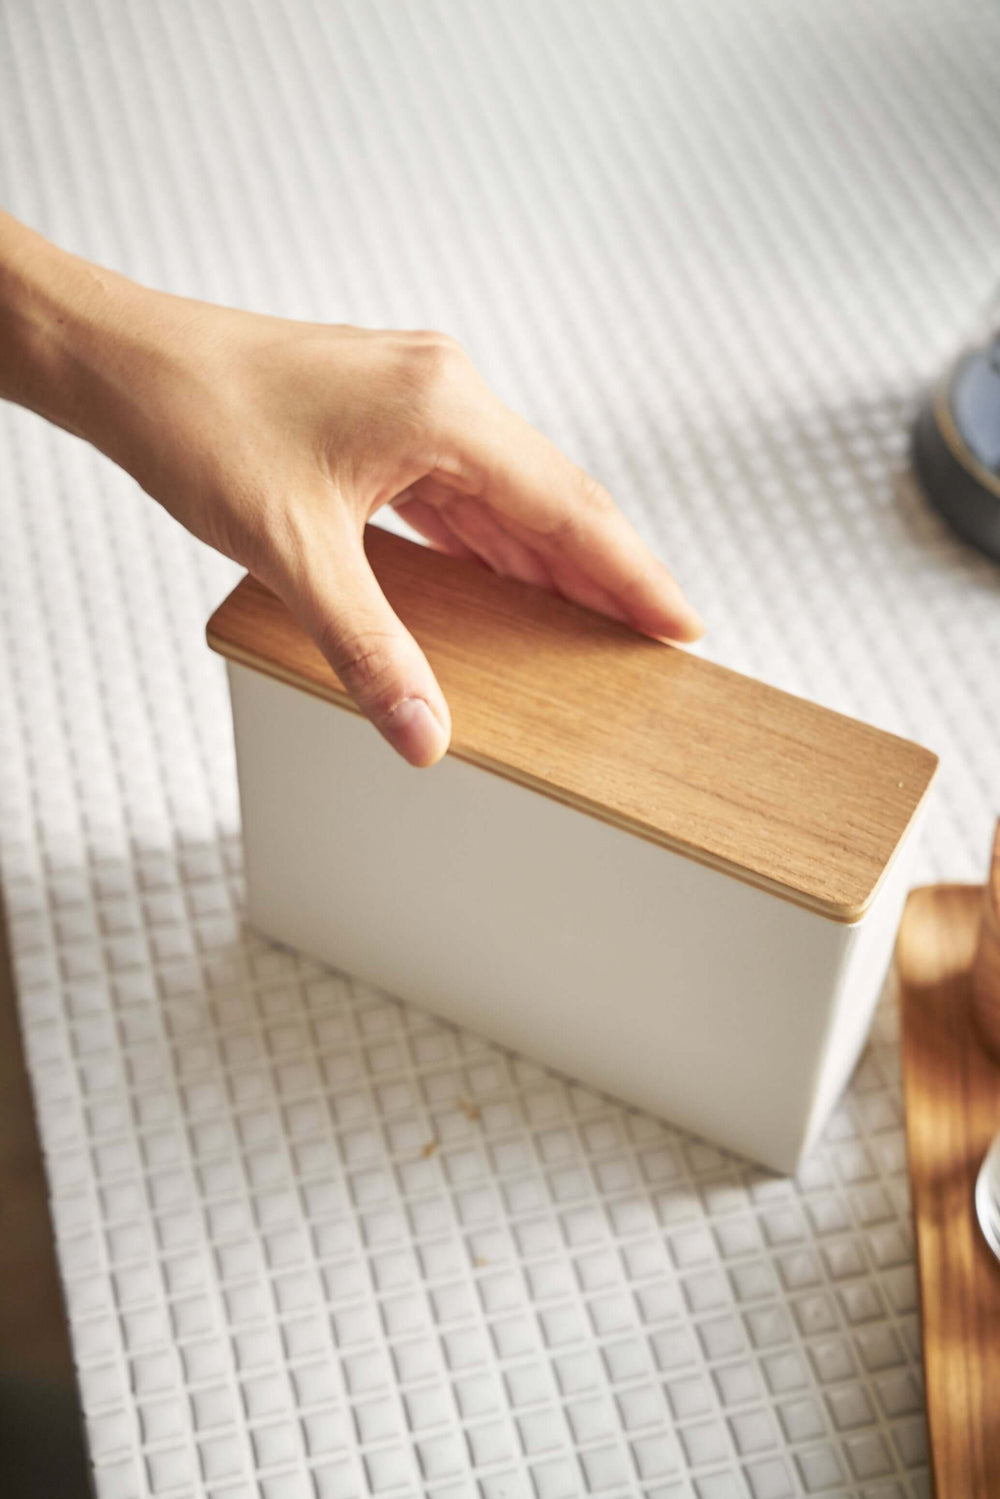 Person with their hand on the wooden top of the Yamazaki Coffee Filter Case